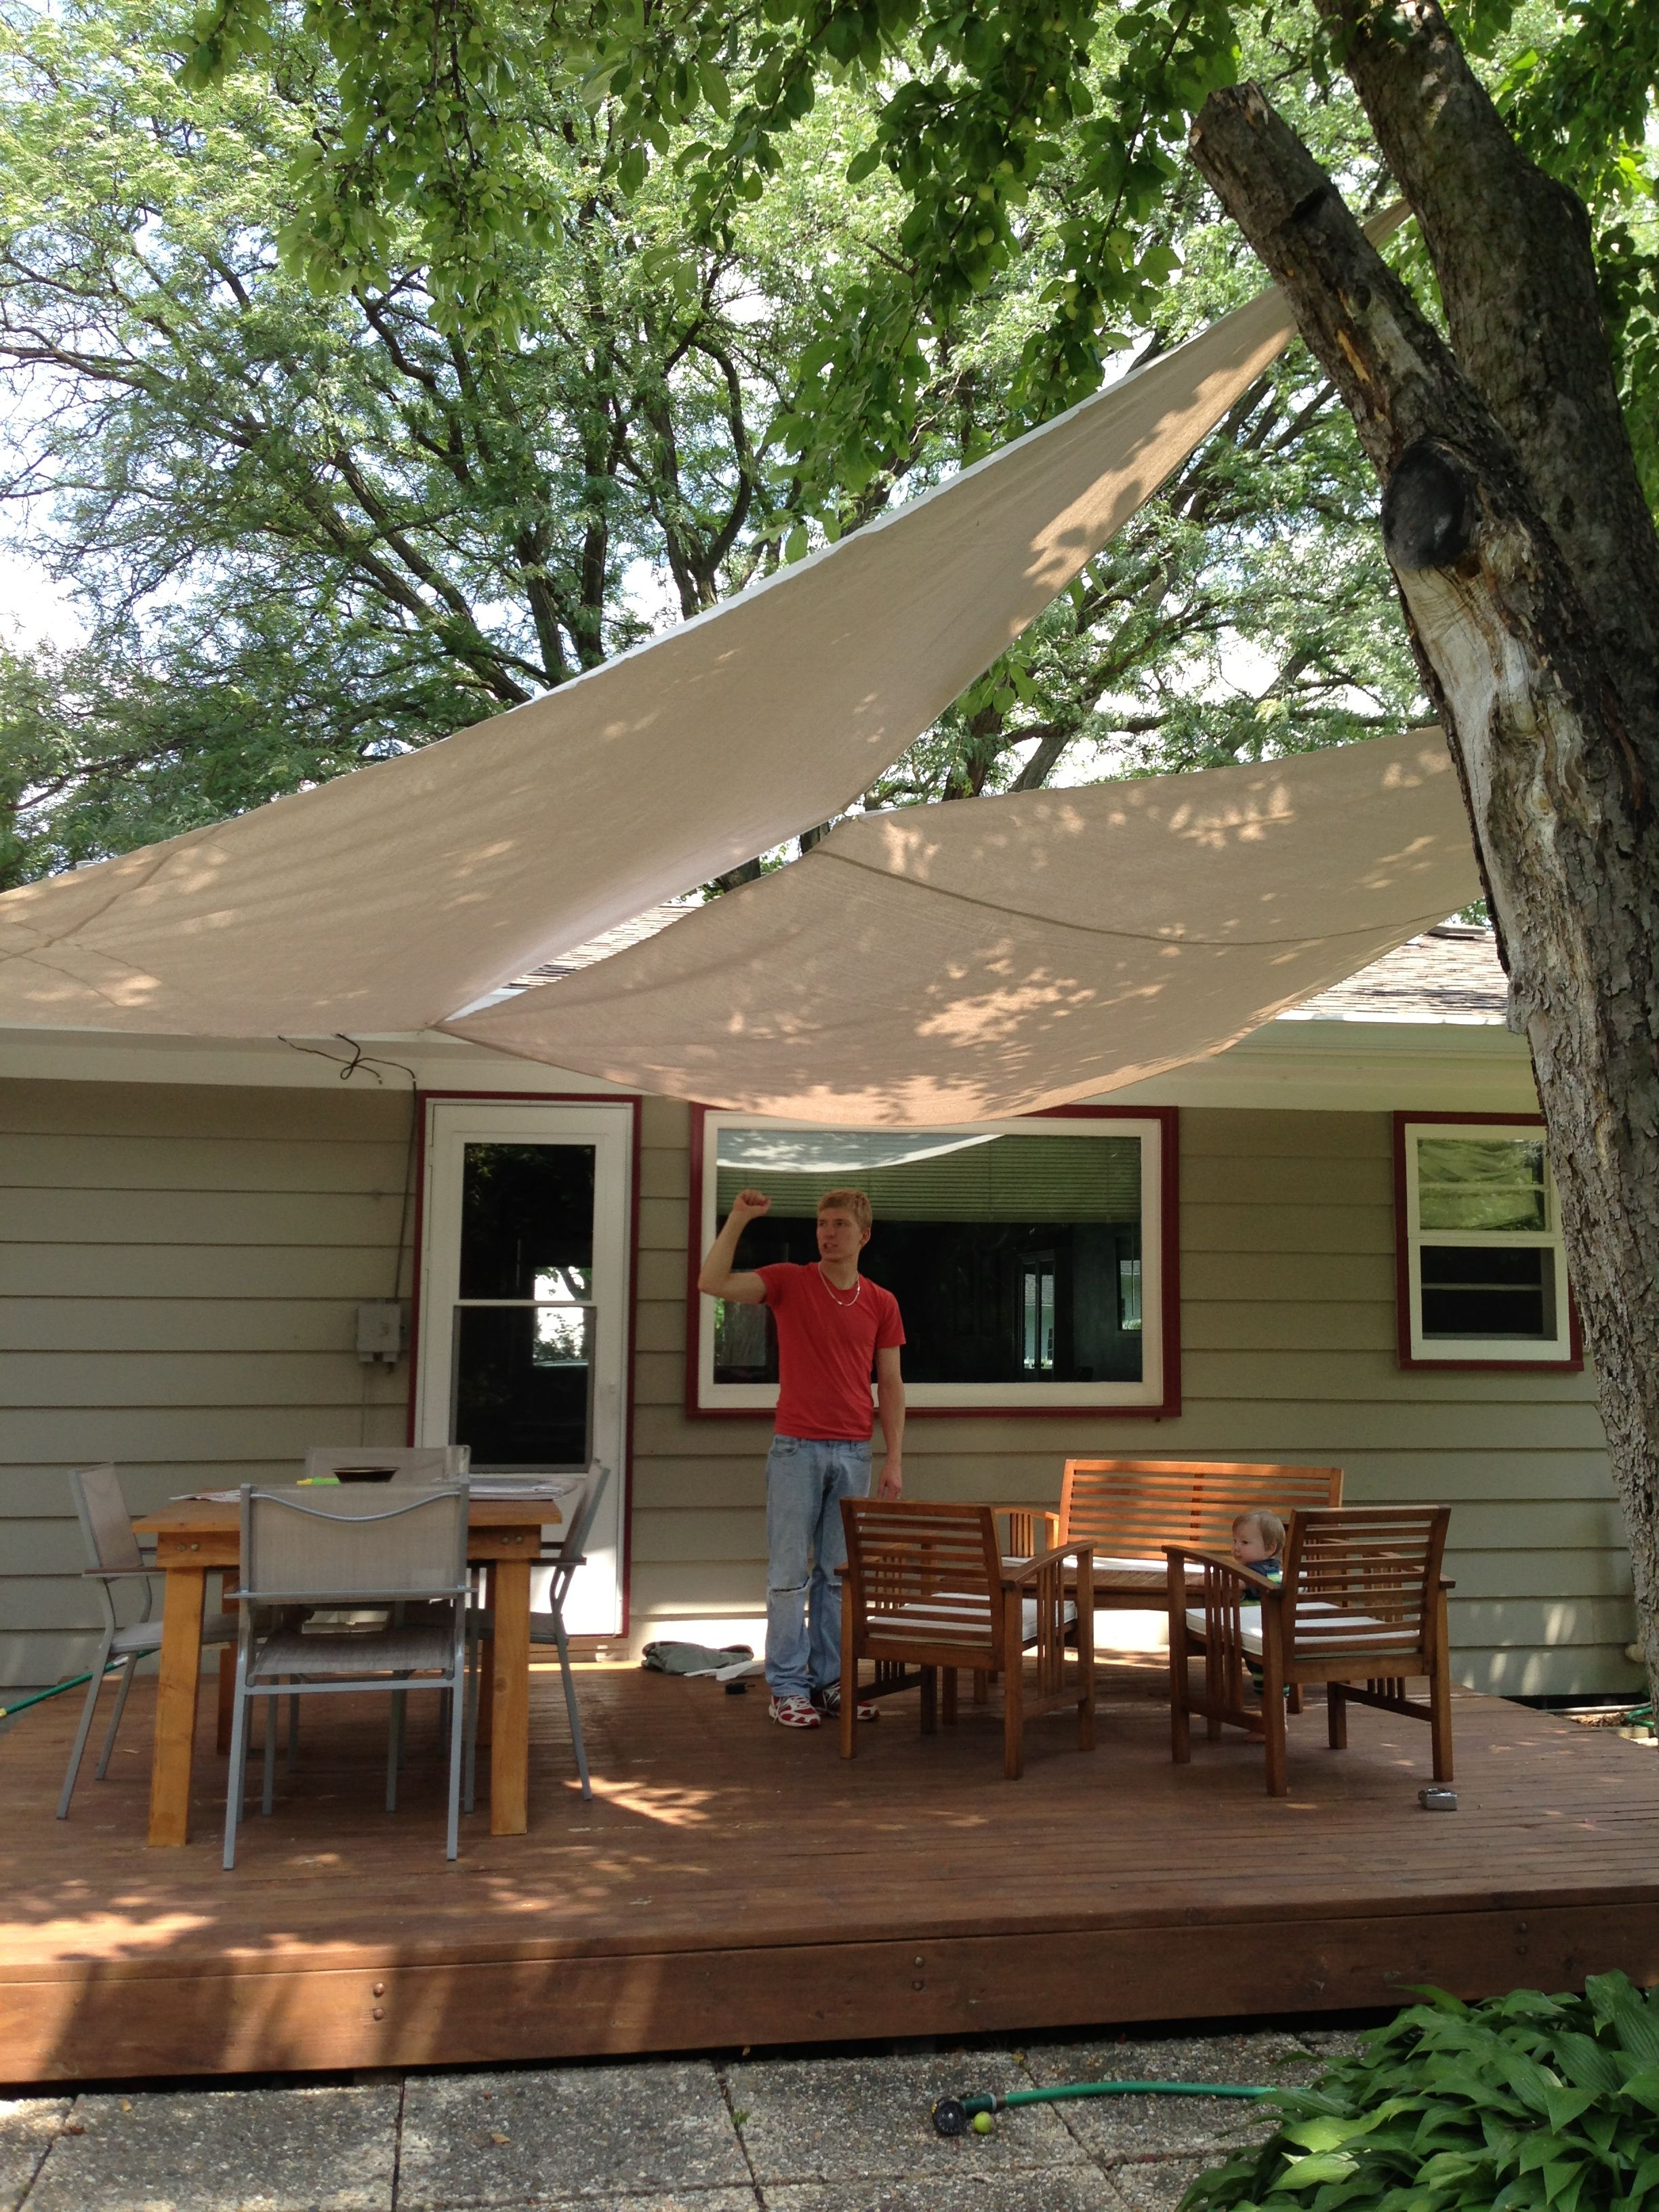 Genial DIY Deck Awning With Painters Drop Cloth Canvas, Grommets And Eye Screws.